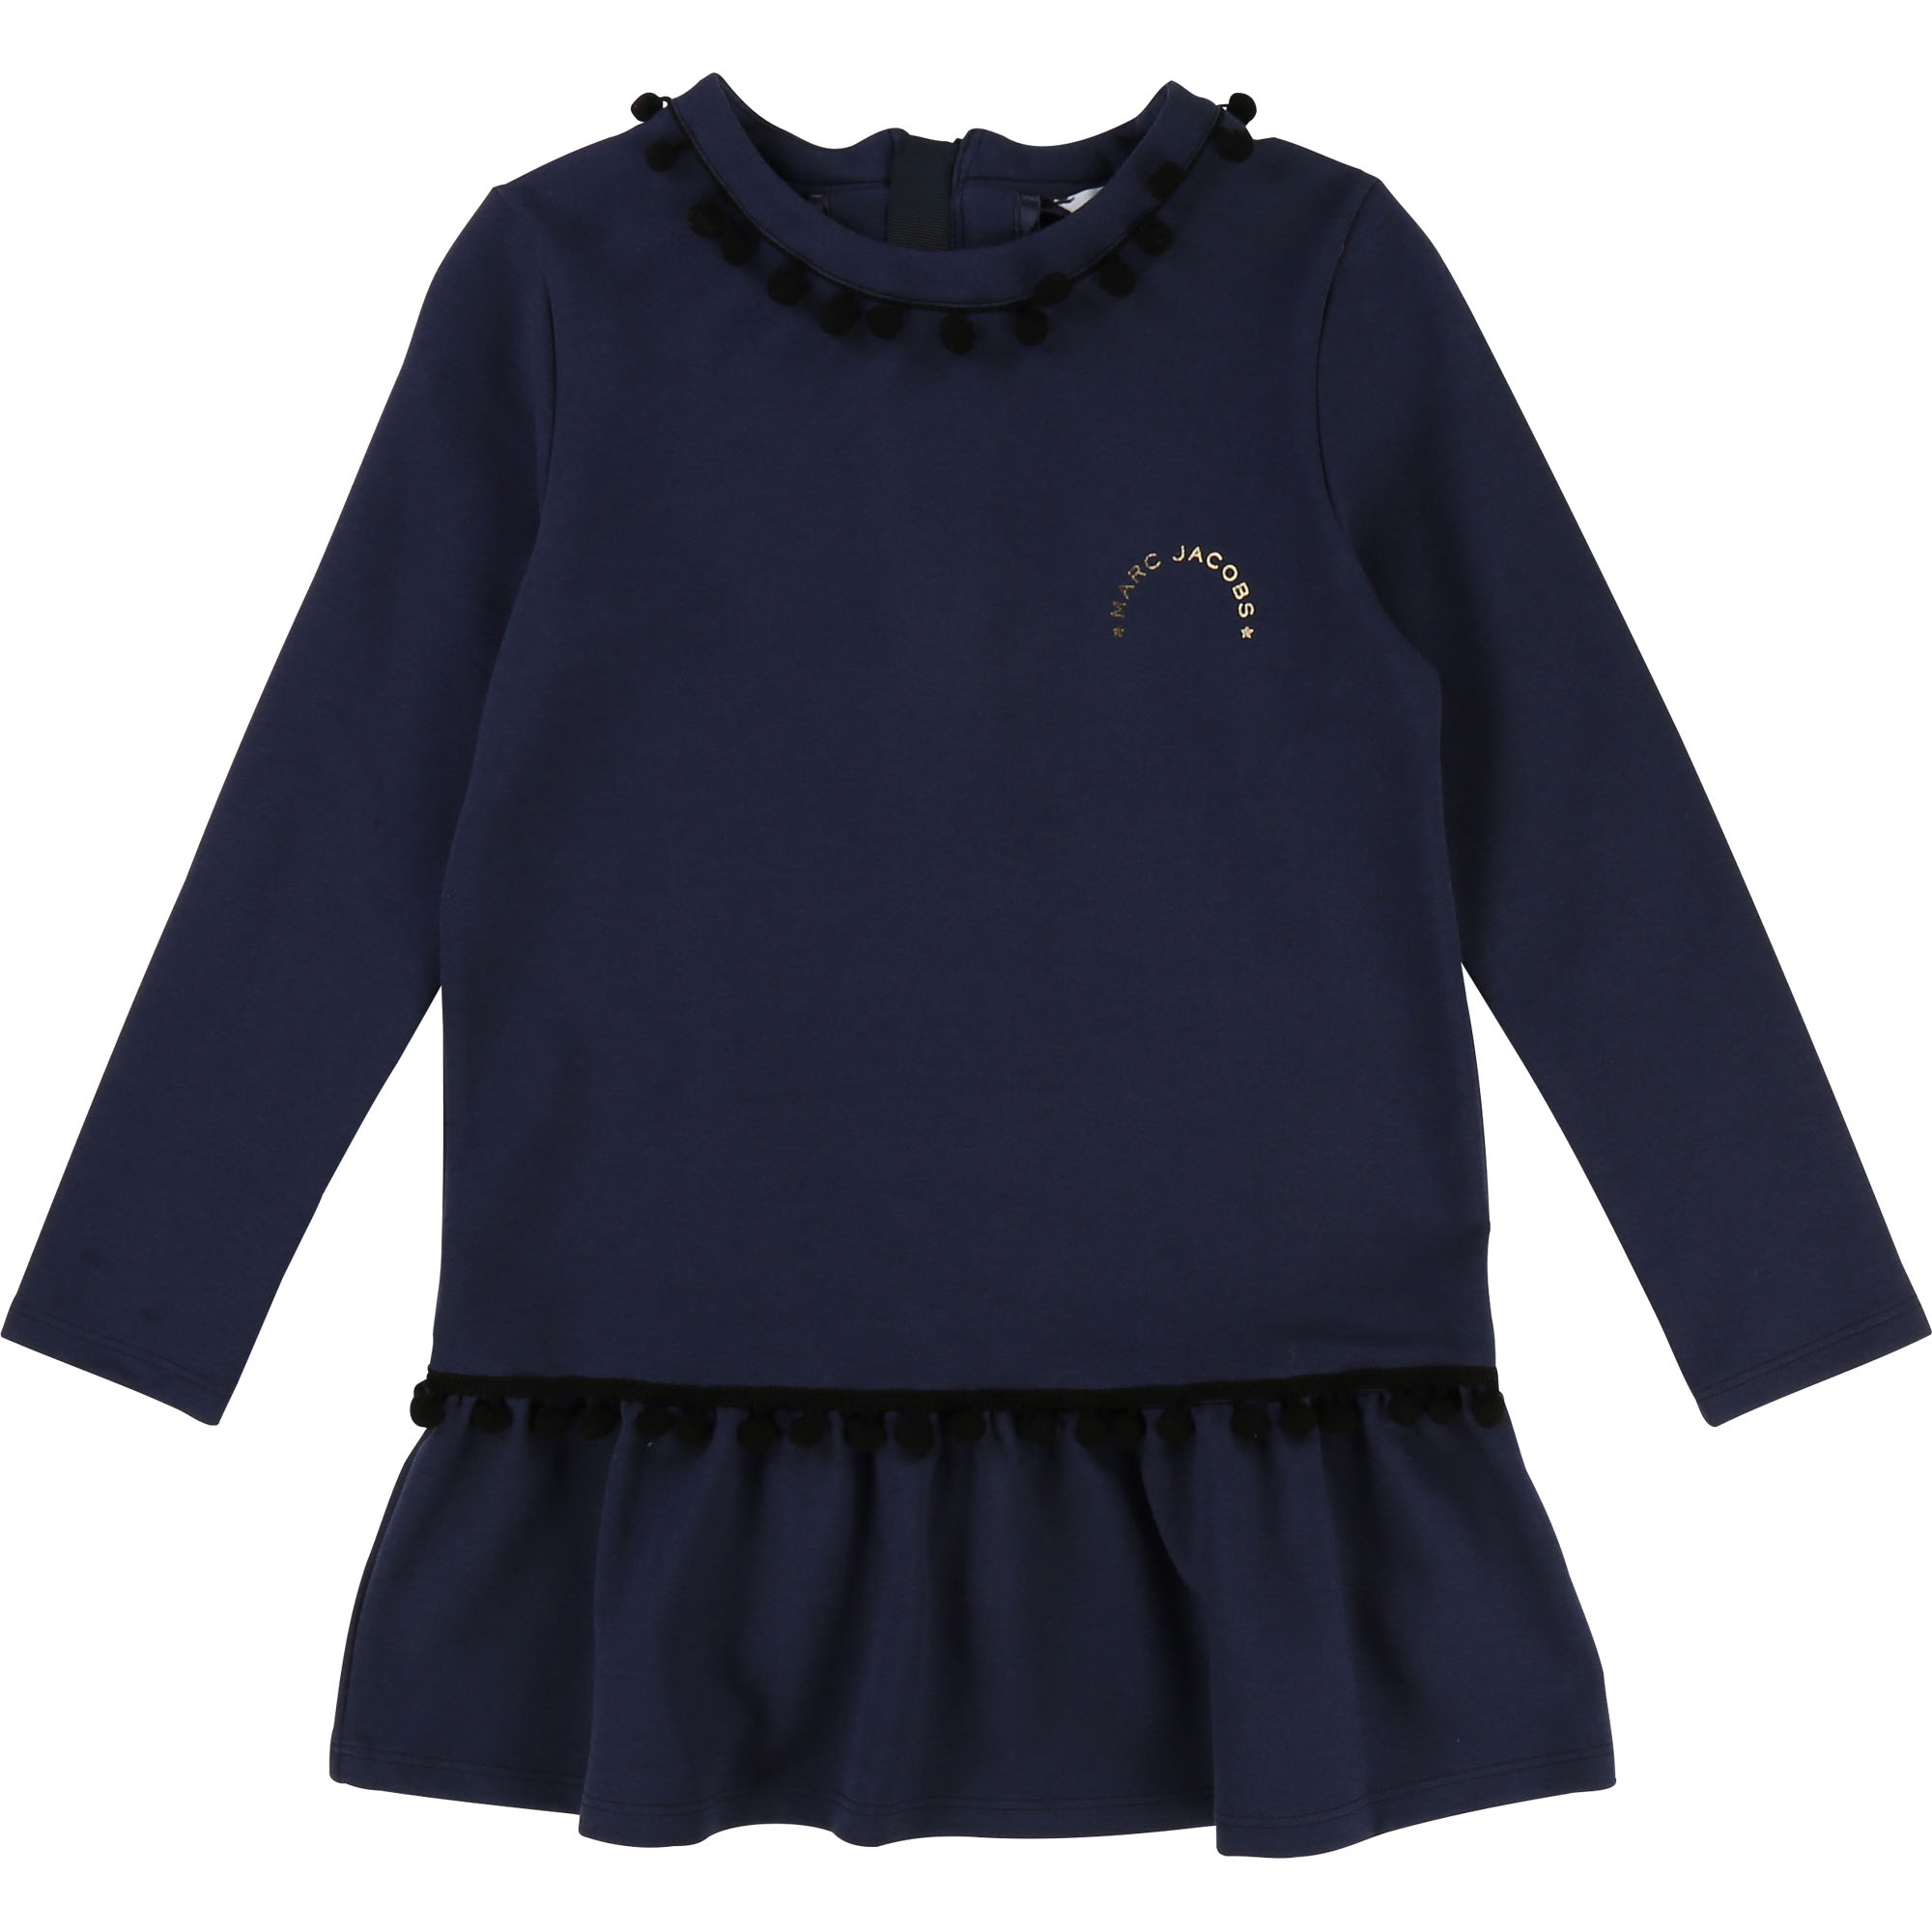 Milano knit dress LITTLE MARC JACOBS for GIRL